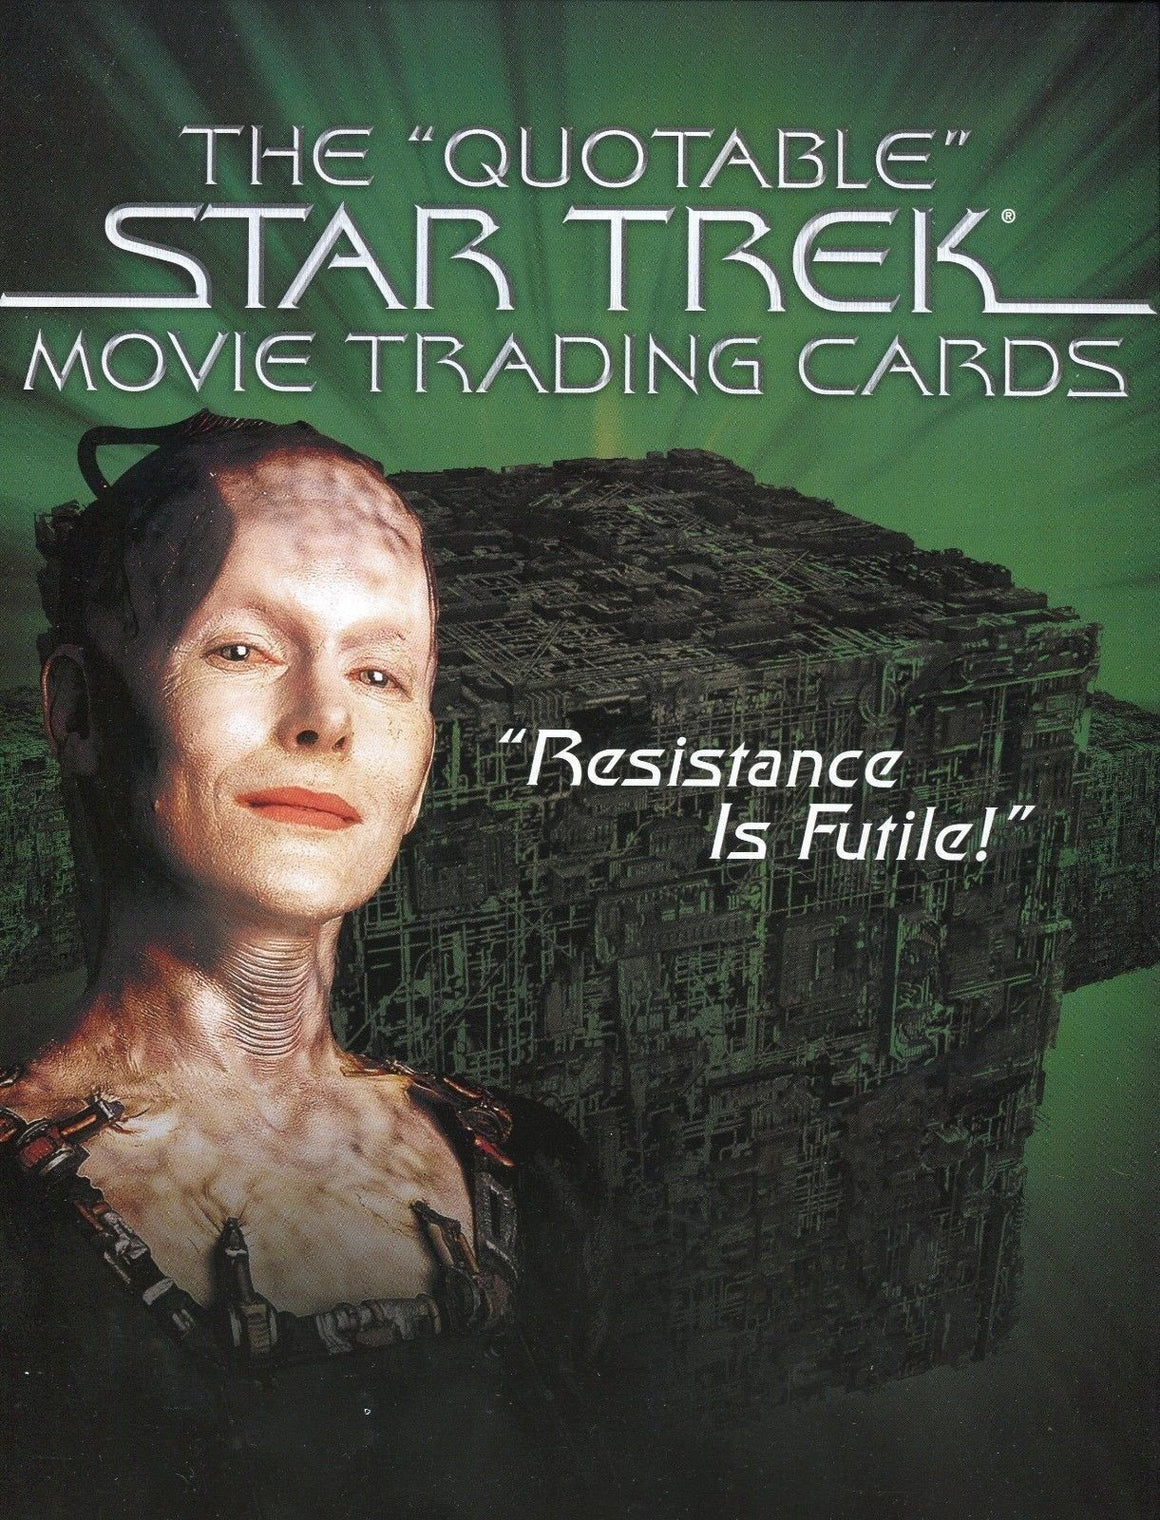 Star Trek Quotable Movies Card Album